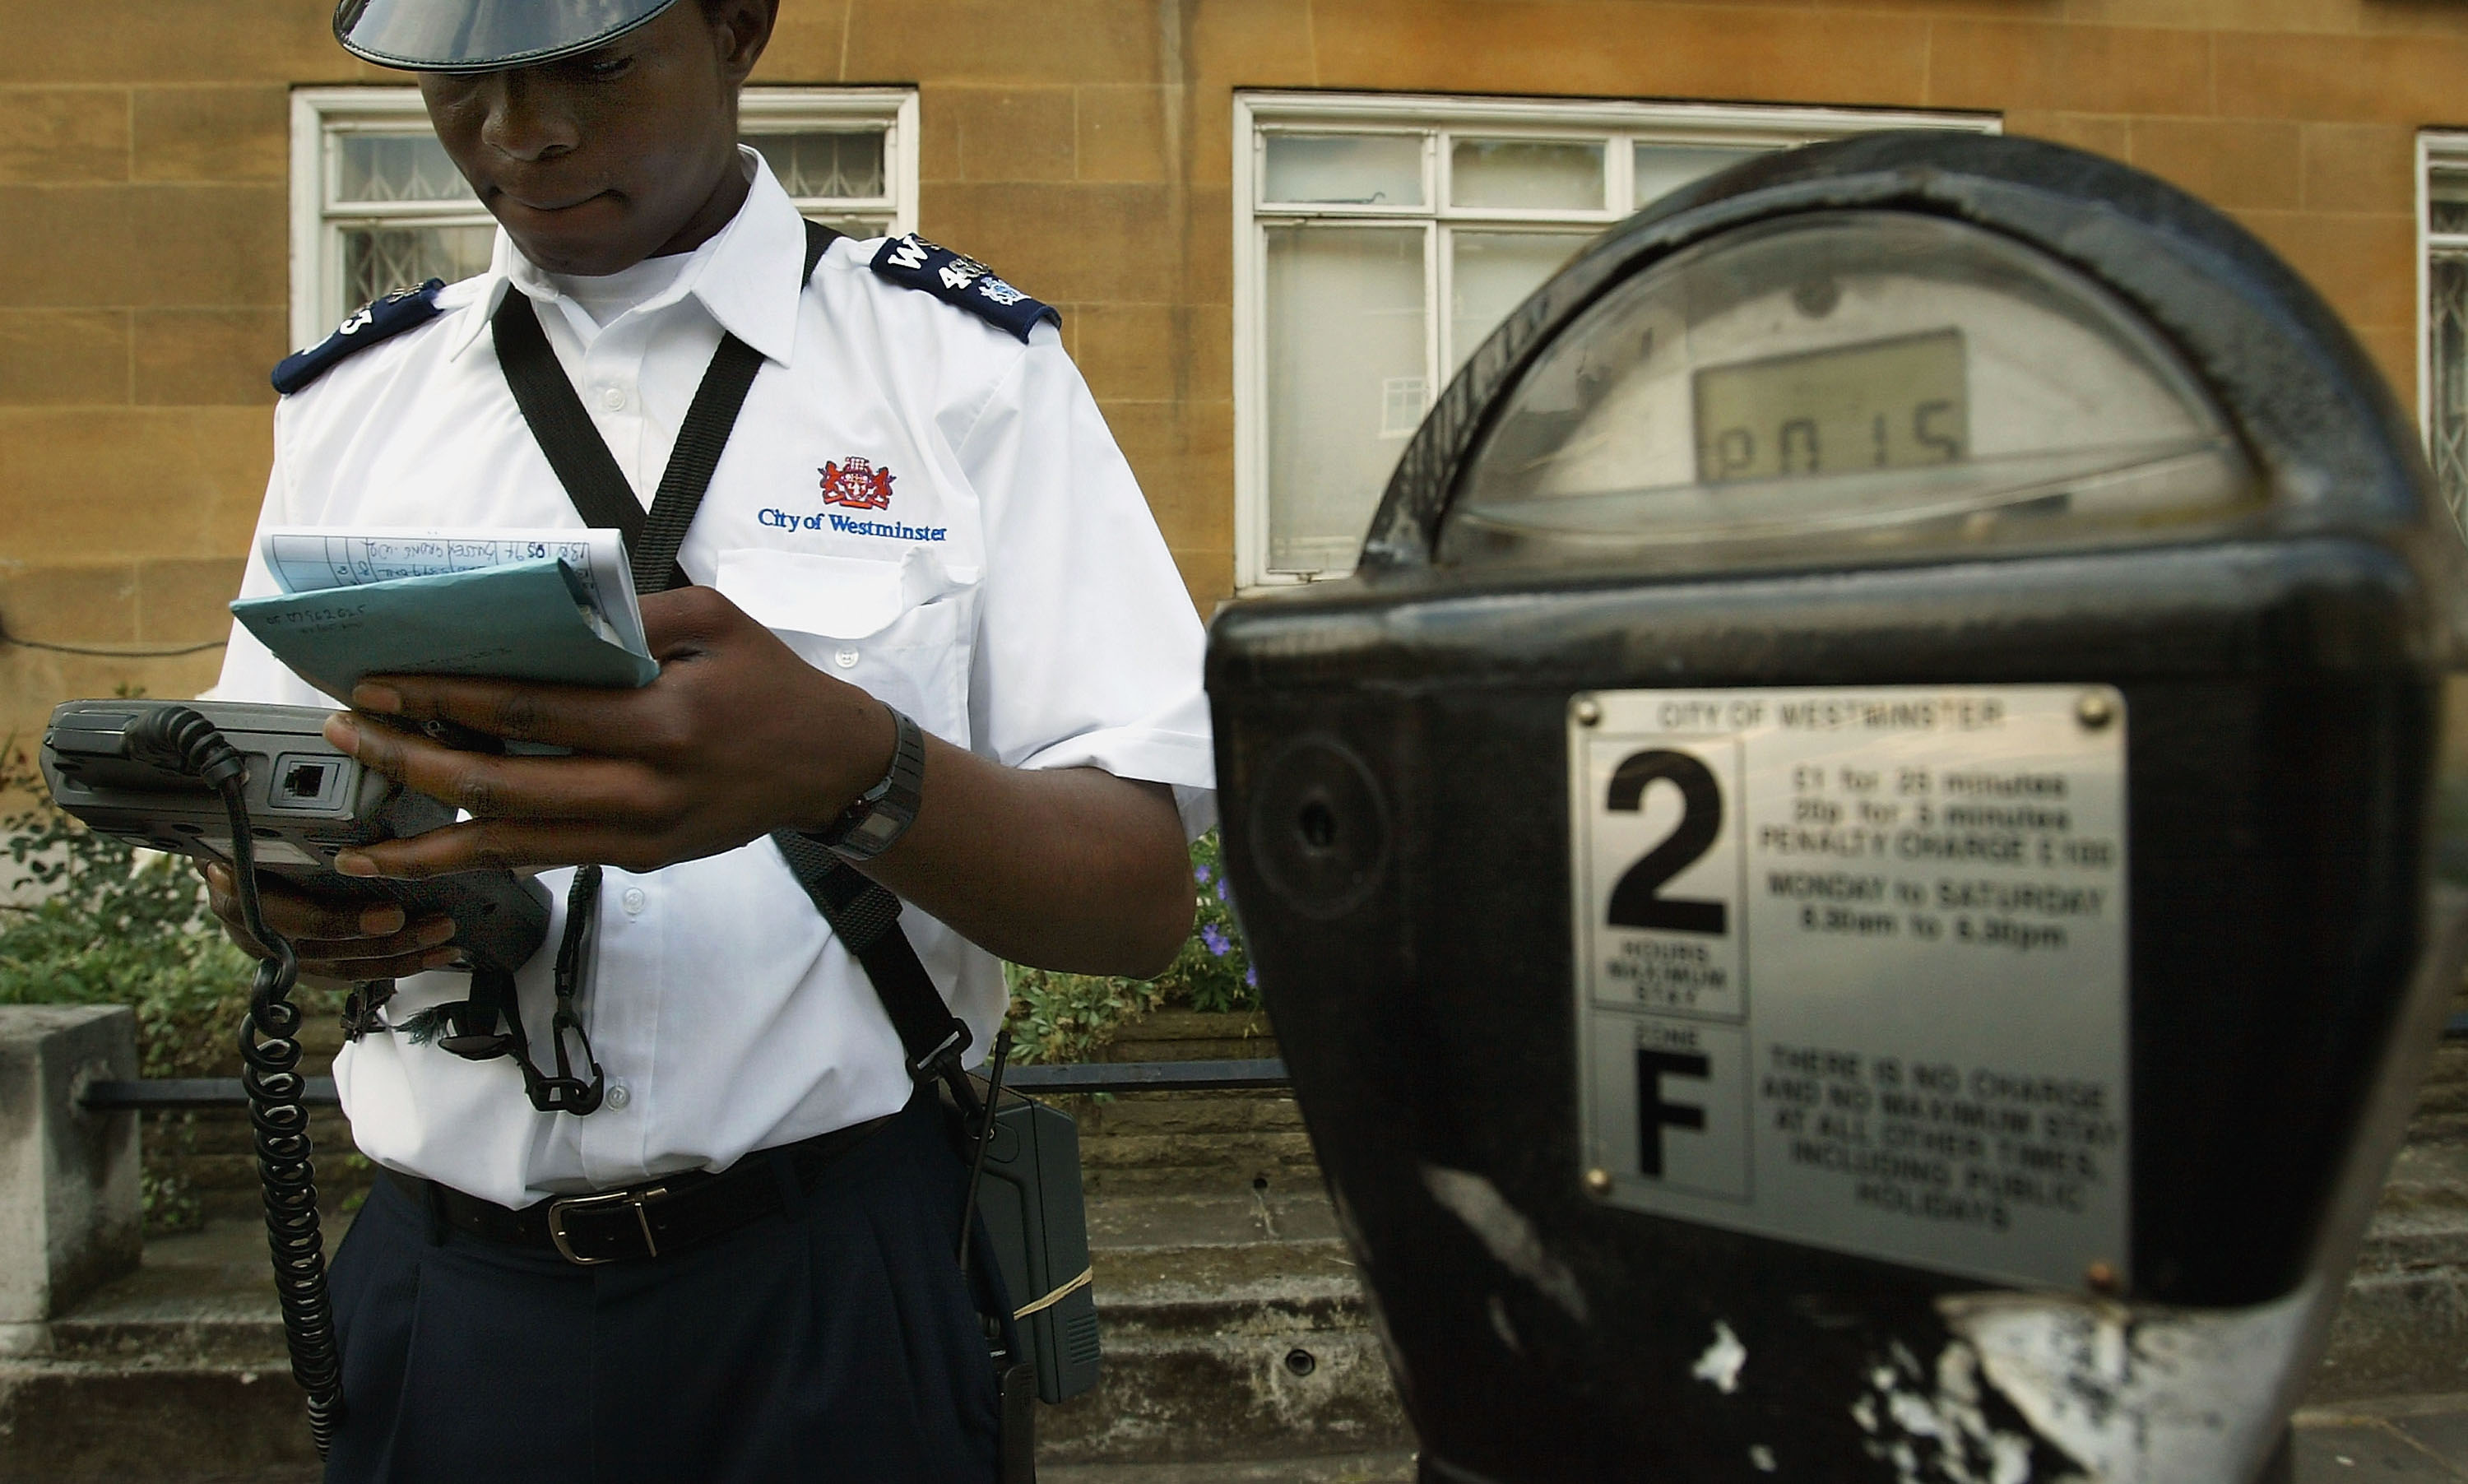 A Westminster traffic warden issues a parking ticket on July 7, 2004 in London, England.